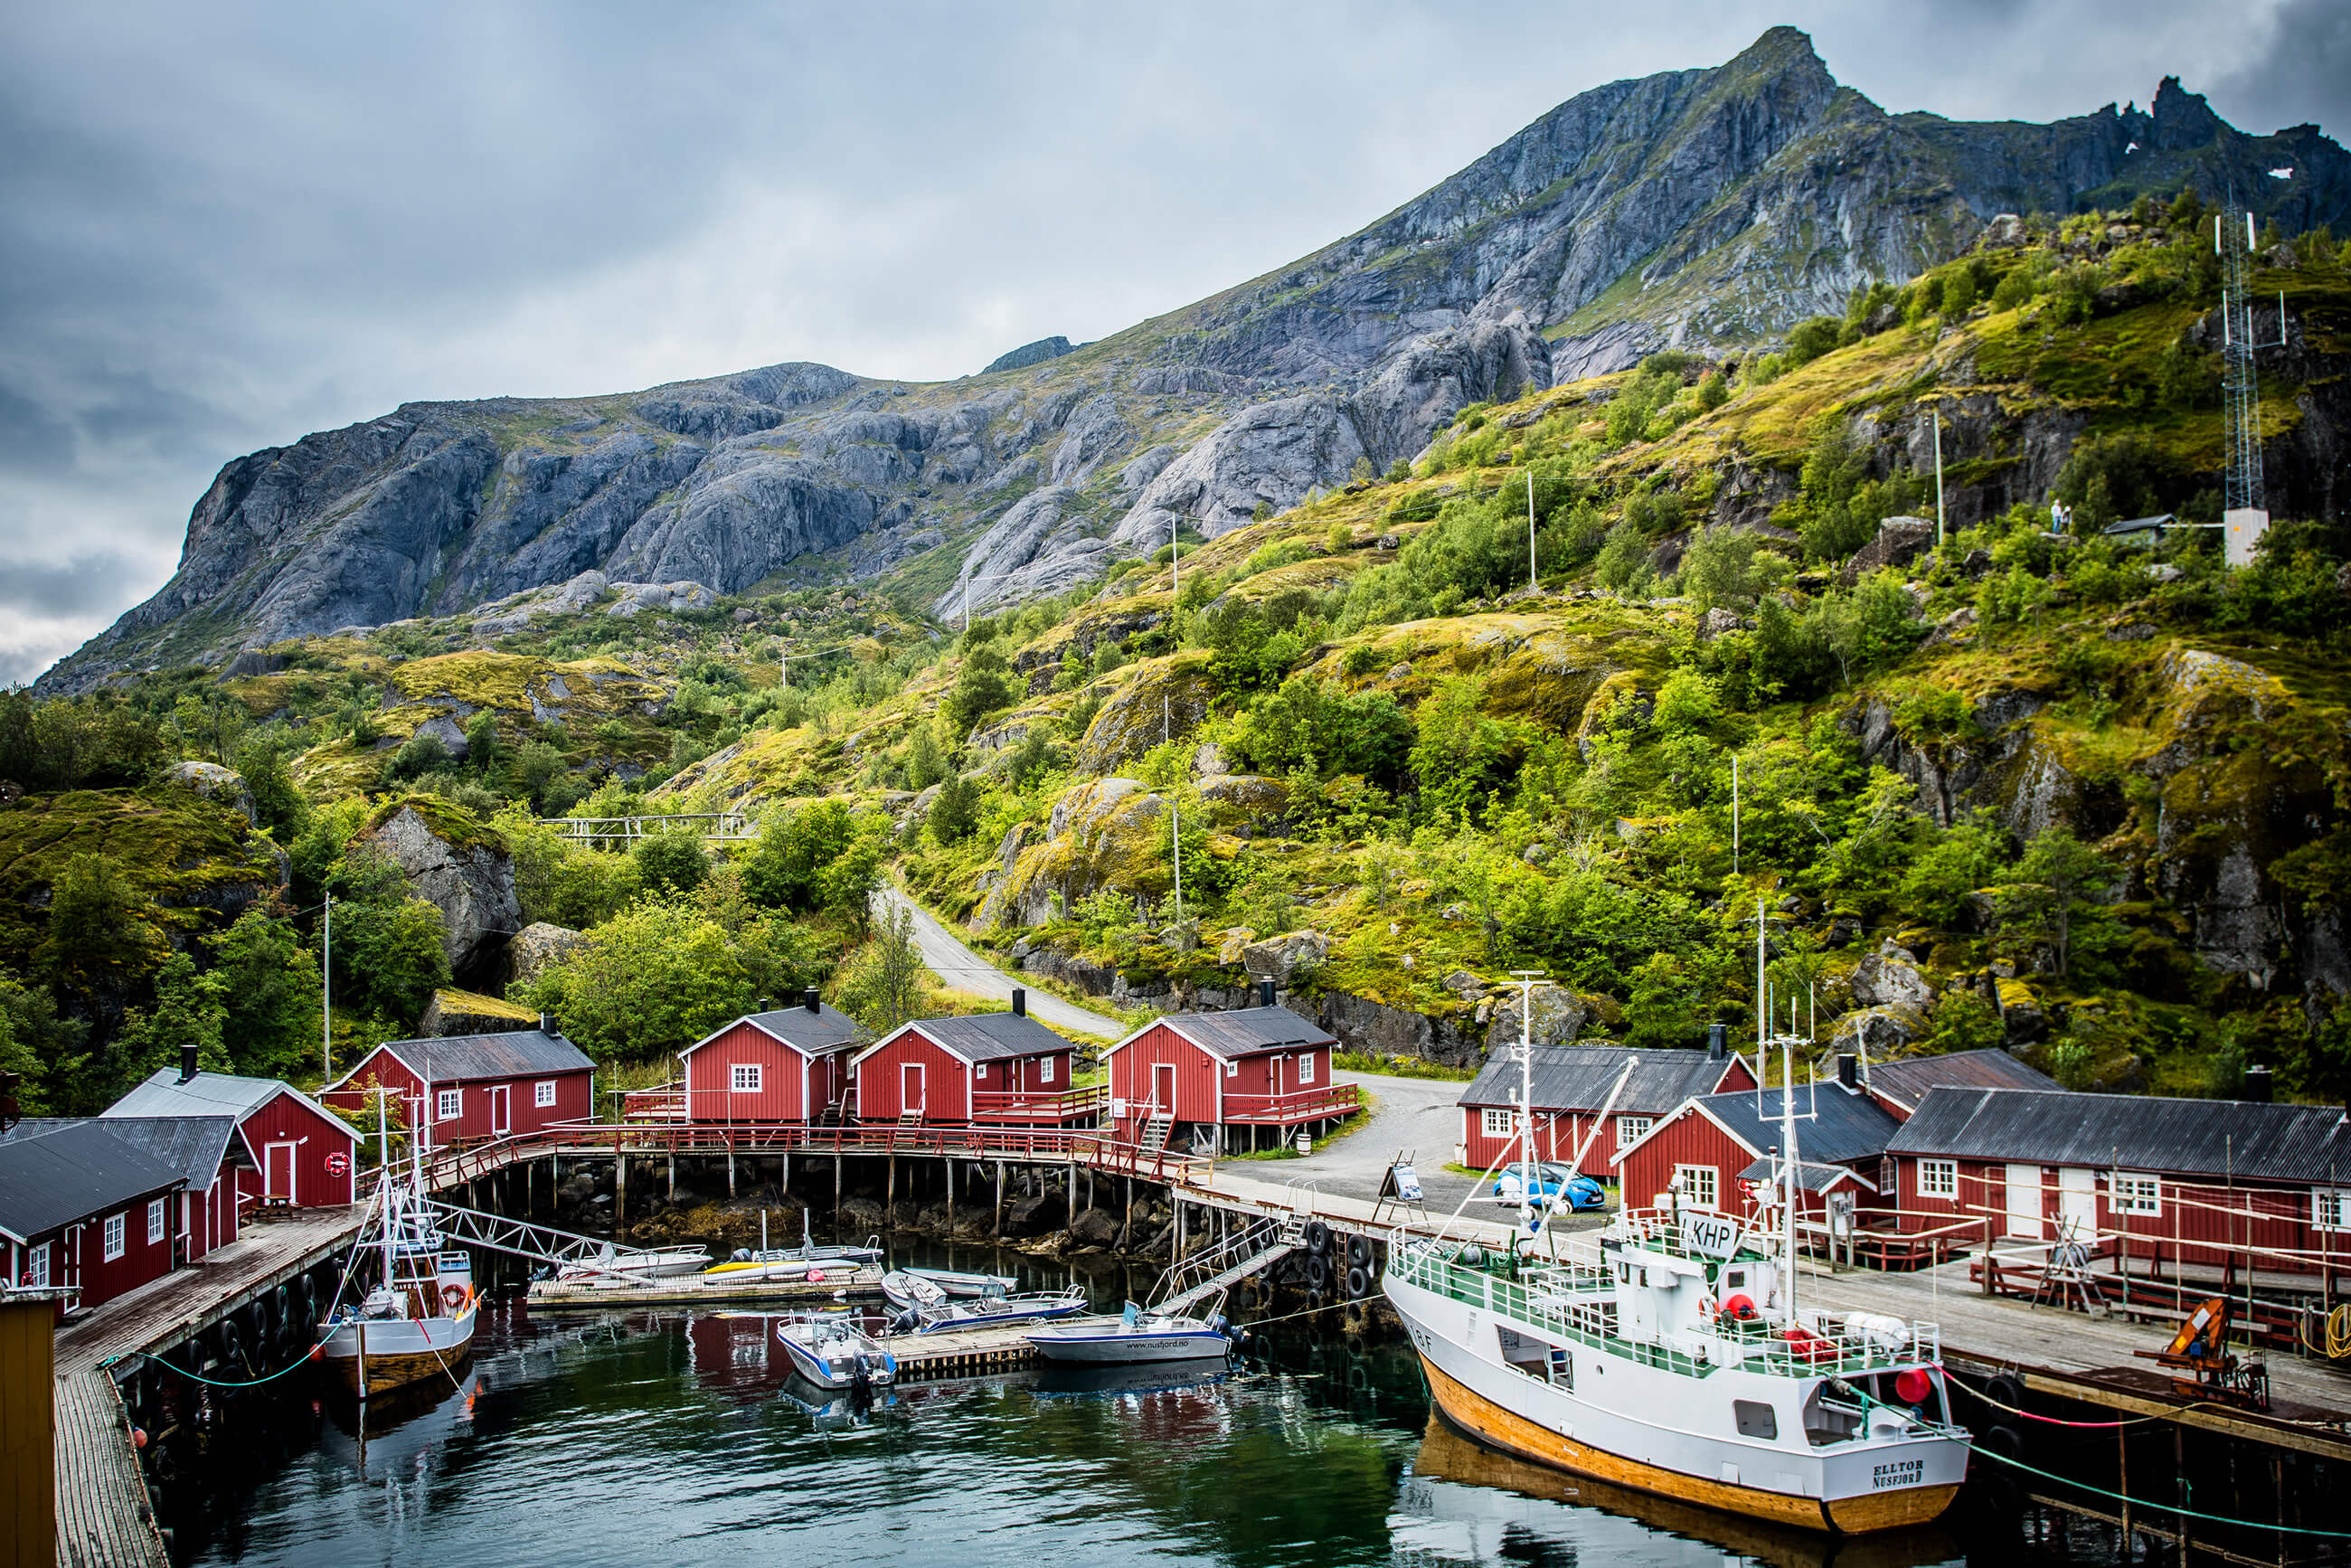 https://bubo.sk/uploads/galleries/5043/nusfjord-i-lofoten-052018-99-0069--foto_thomas_rasmus_skaug.jpg